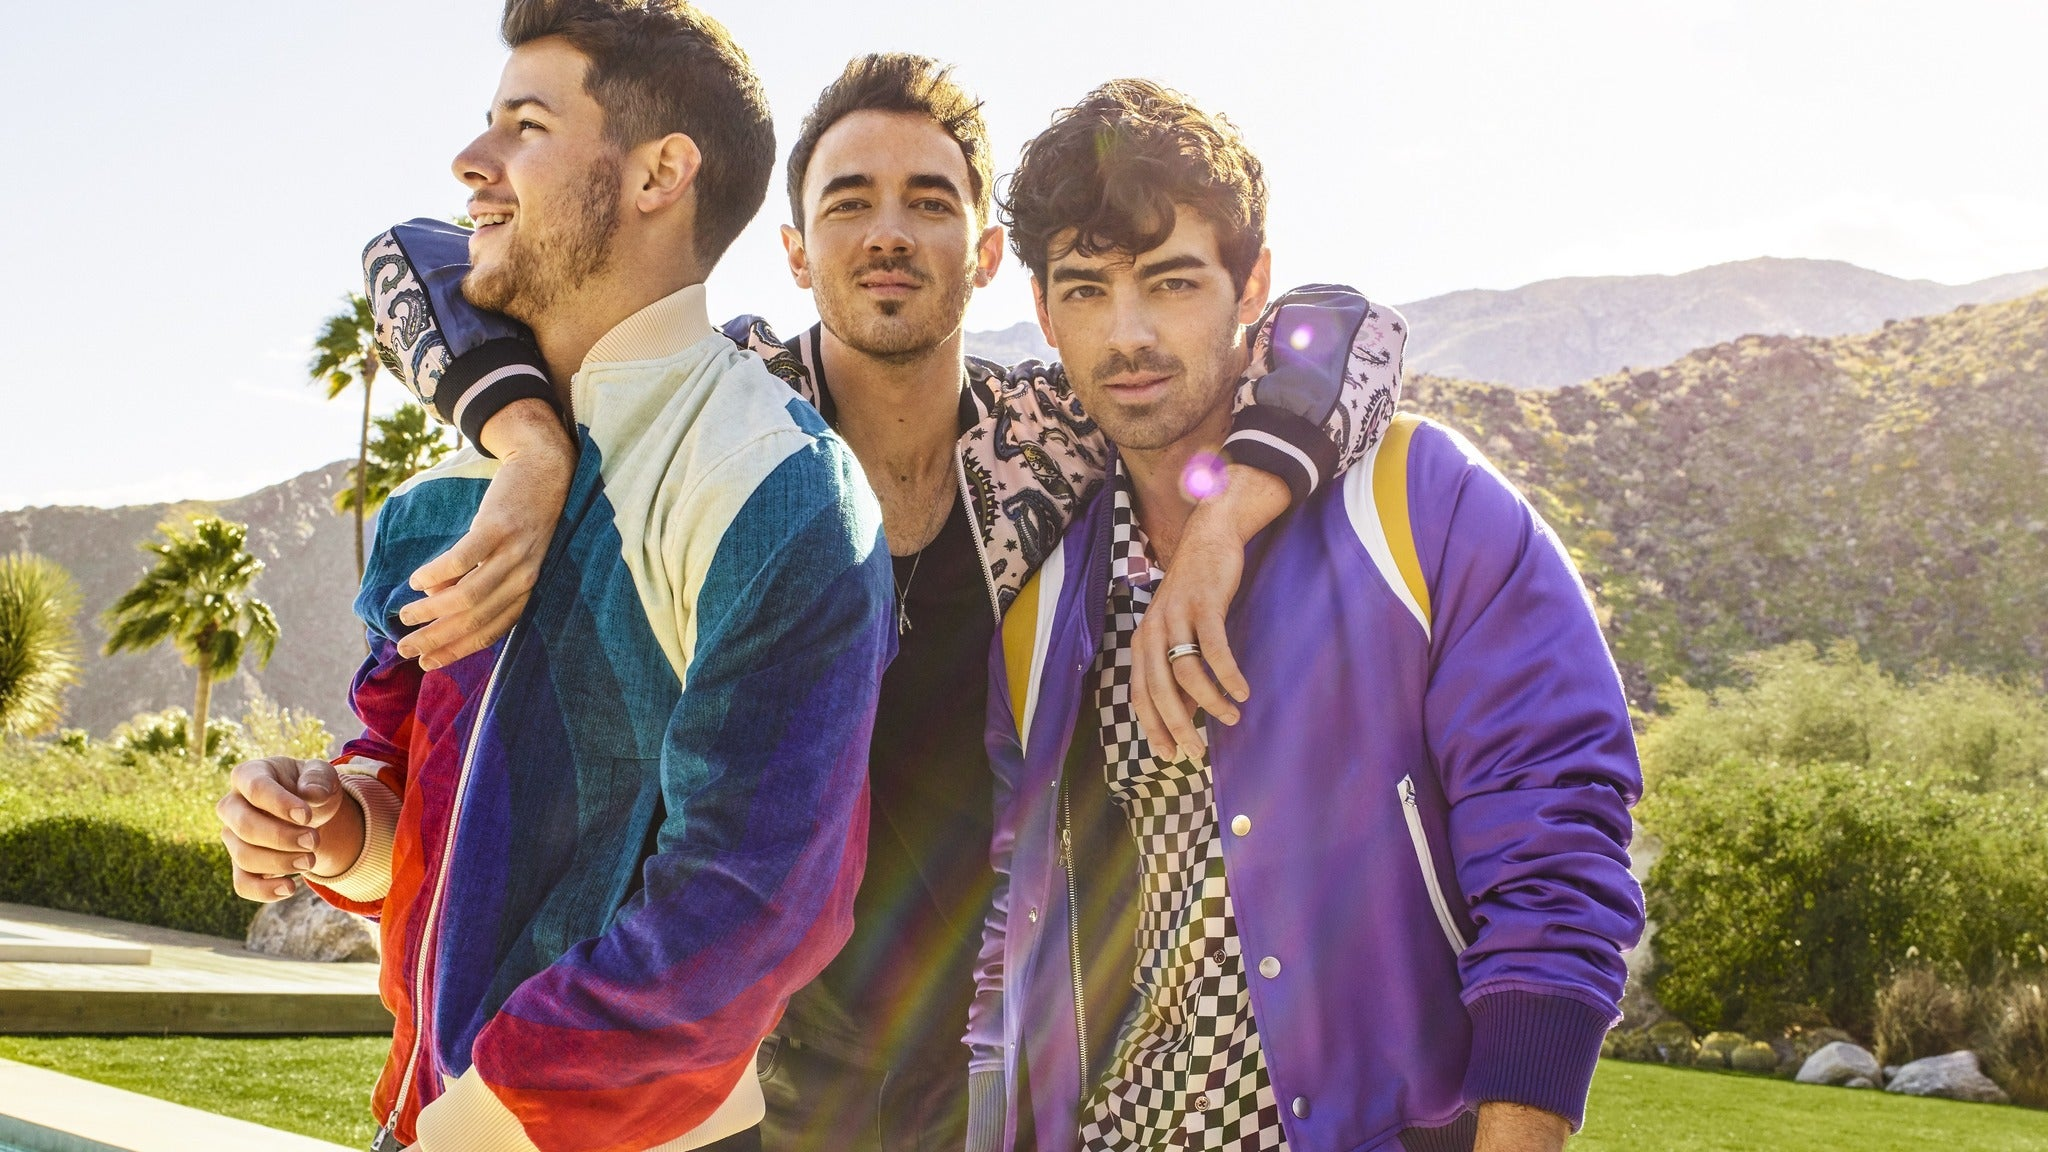 Jonas Brothers: Happiness Begins Tour at Amway Center